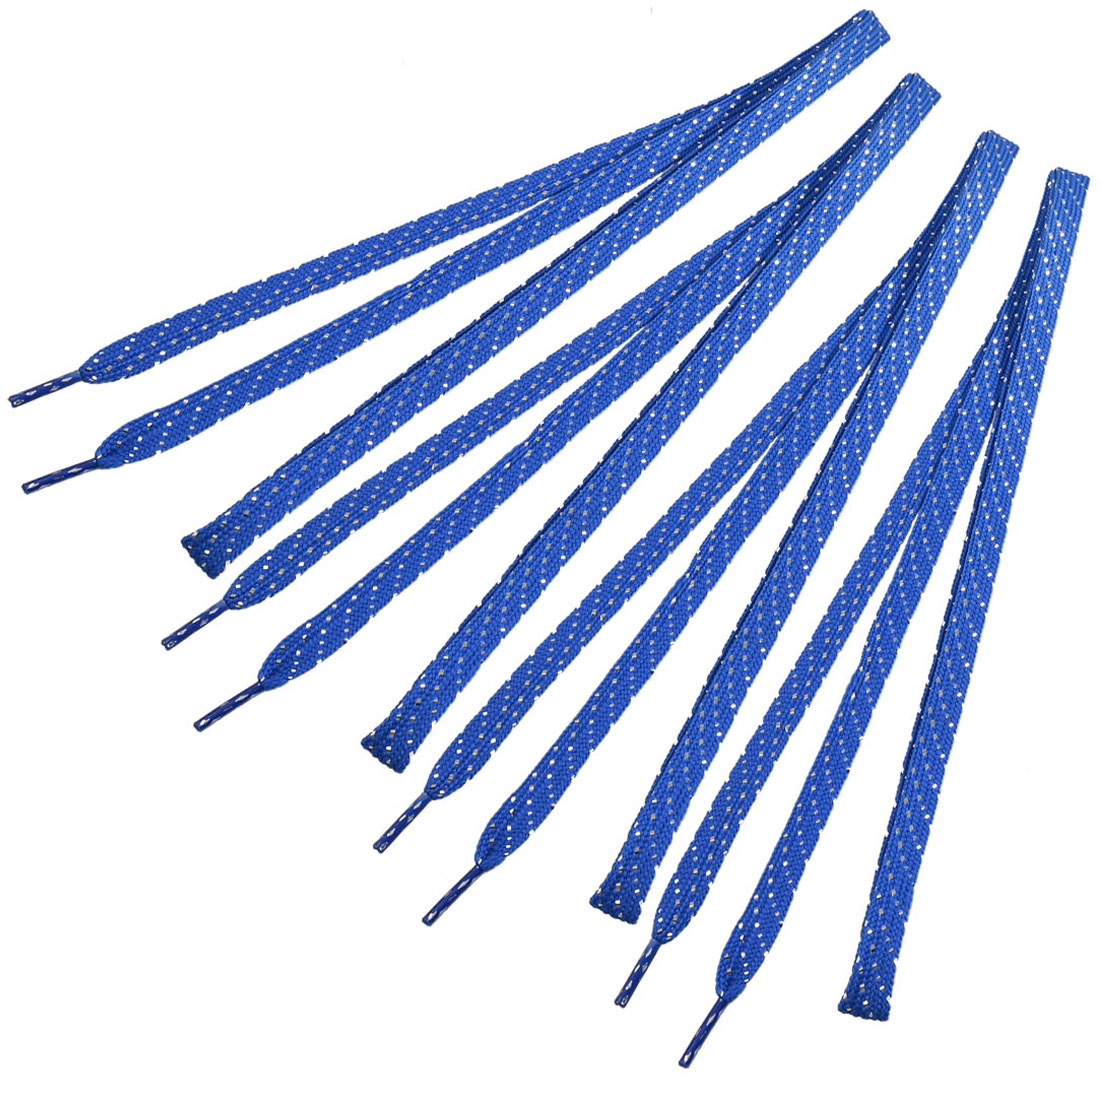 Silver Tone Thread Decorated Sport Sneakers Flat Shoelaces Blue 2 Pairs